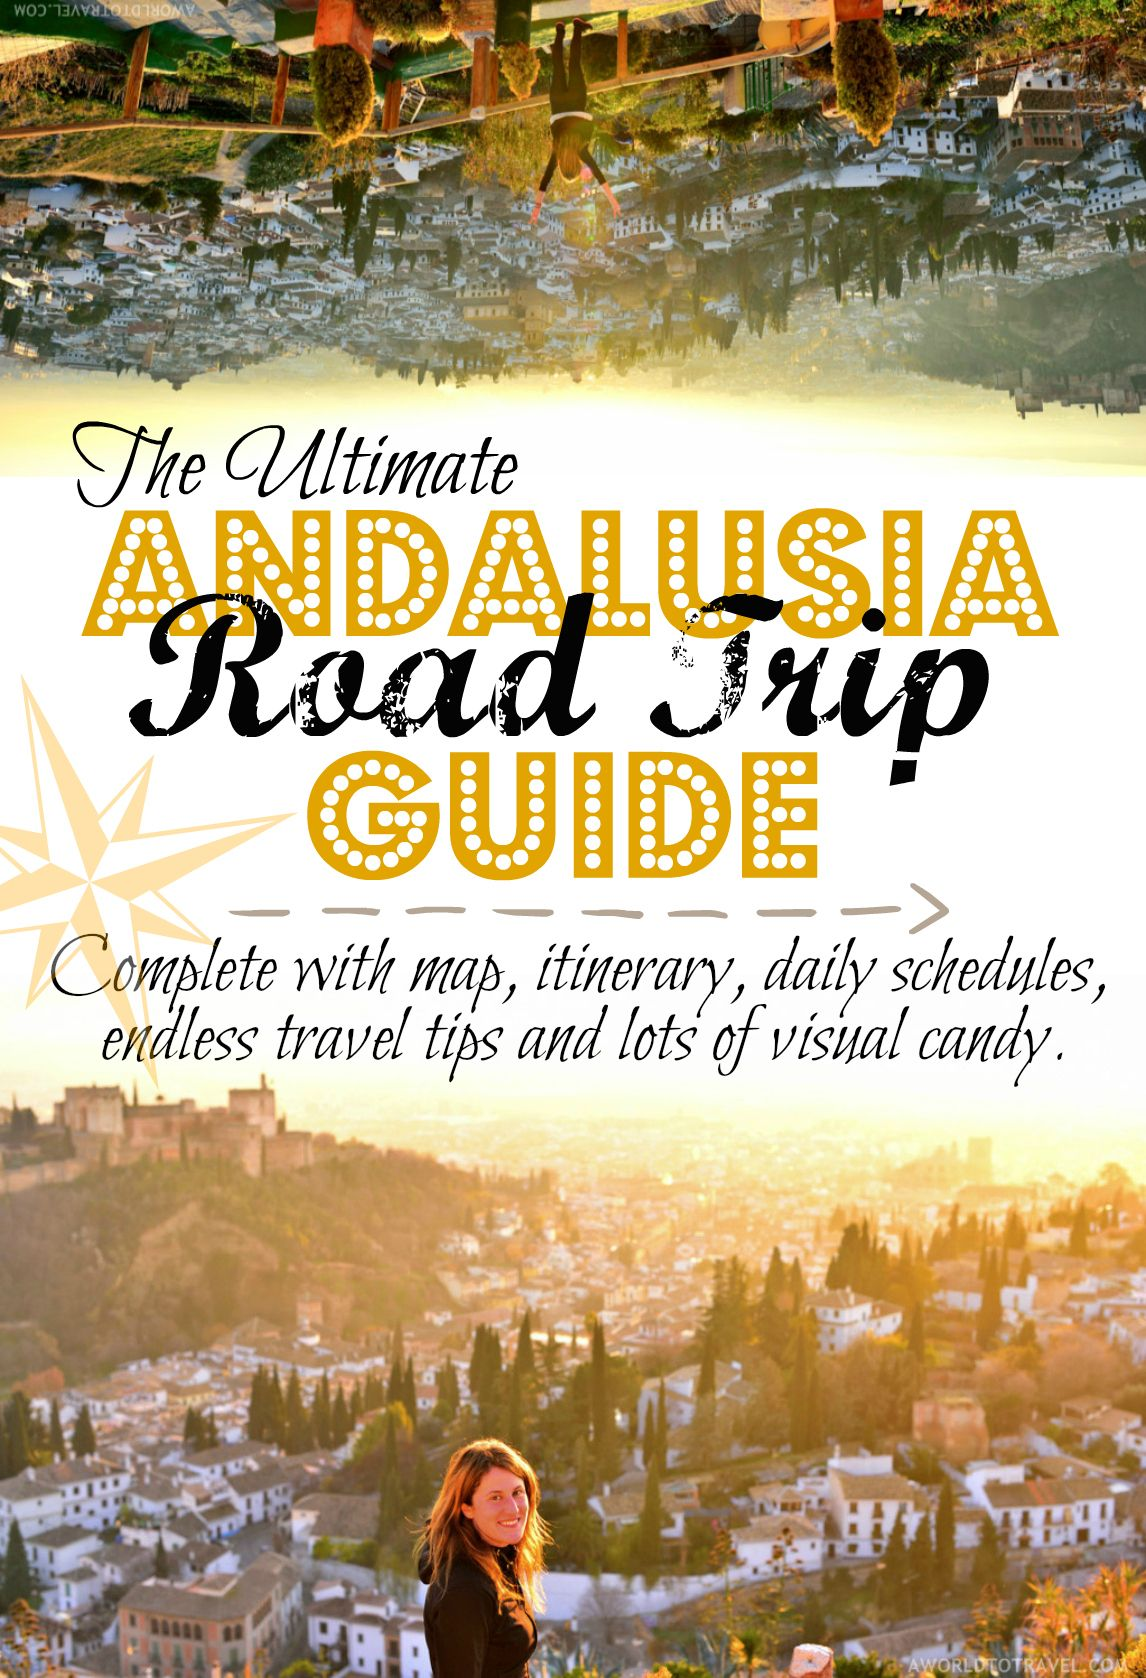 The Ultimate Andalusia Road Trip Guide A complete 4500 word guide